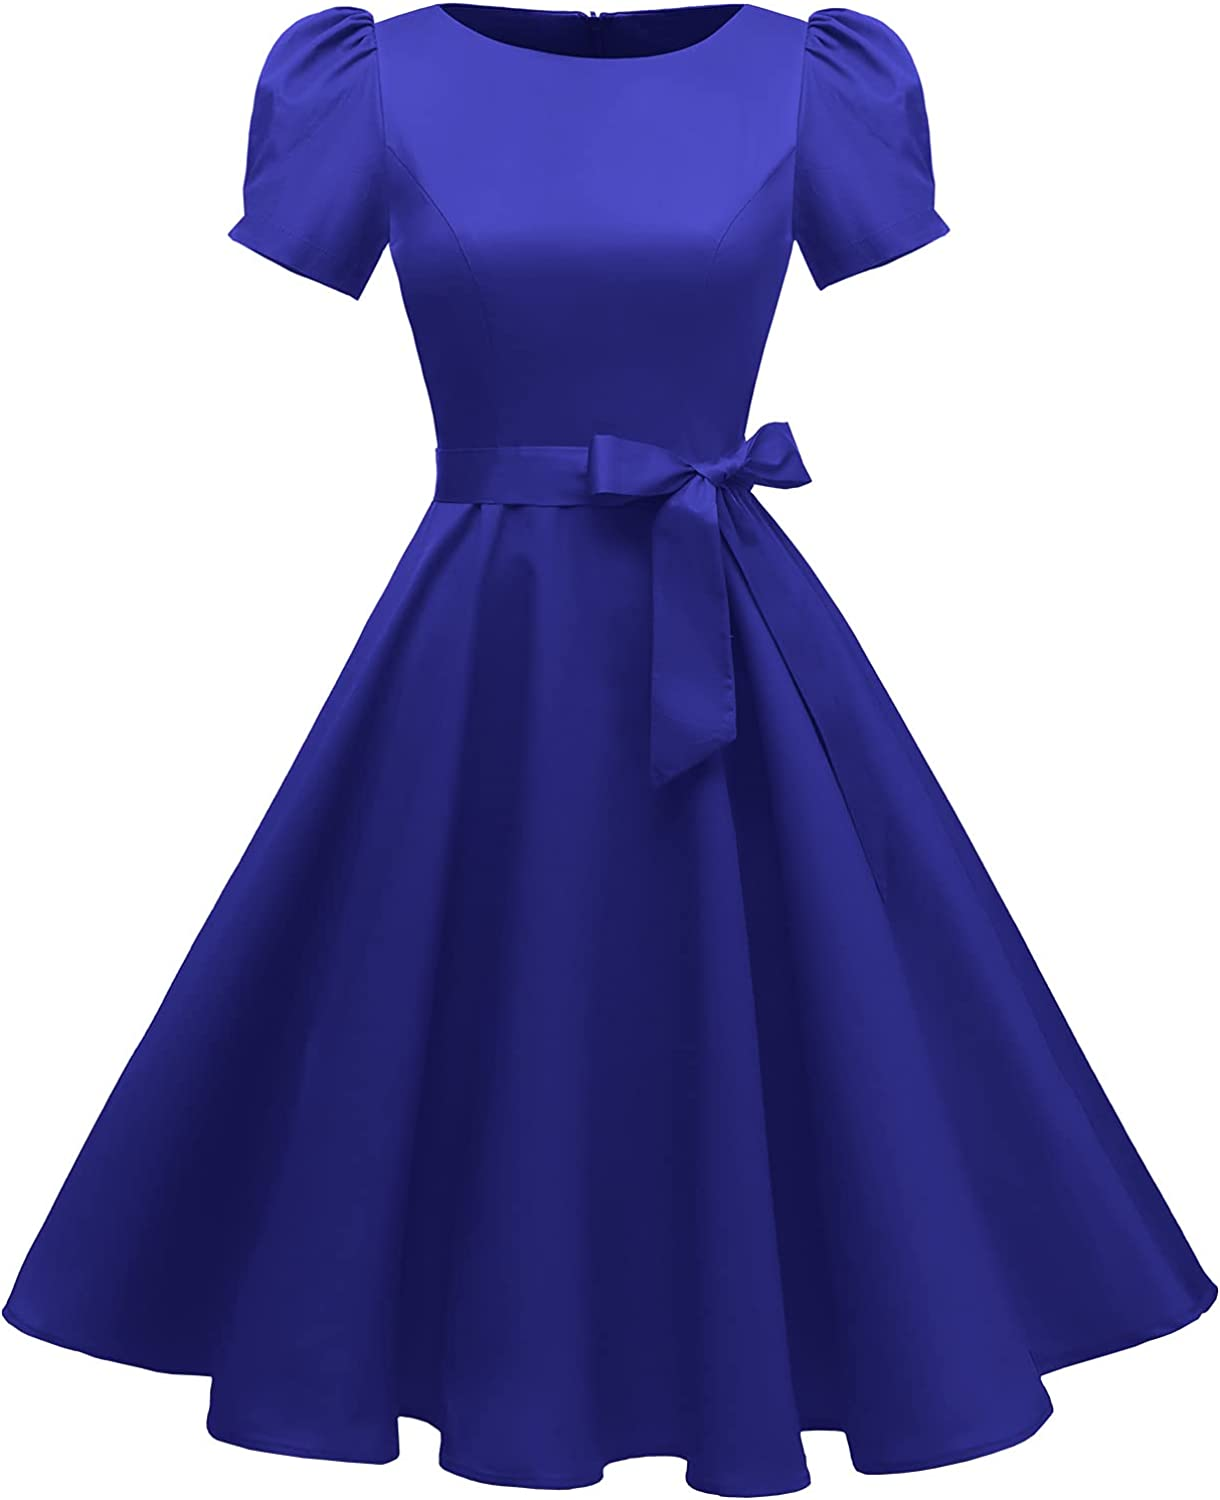 tagunop Women's Boatneck Vintage 1950s Cocktail Party Dress with Puff Sleeves